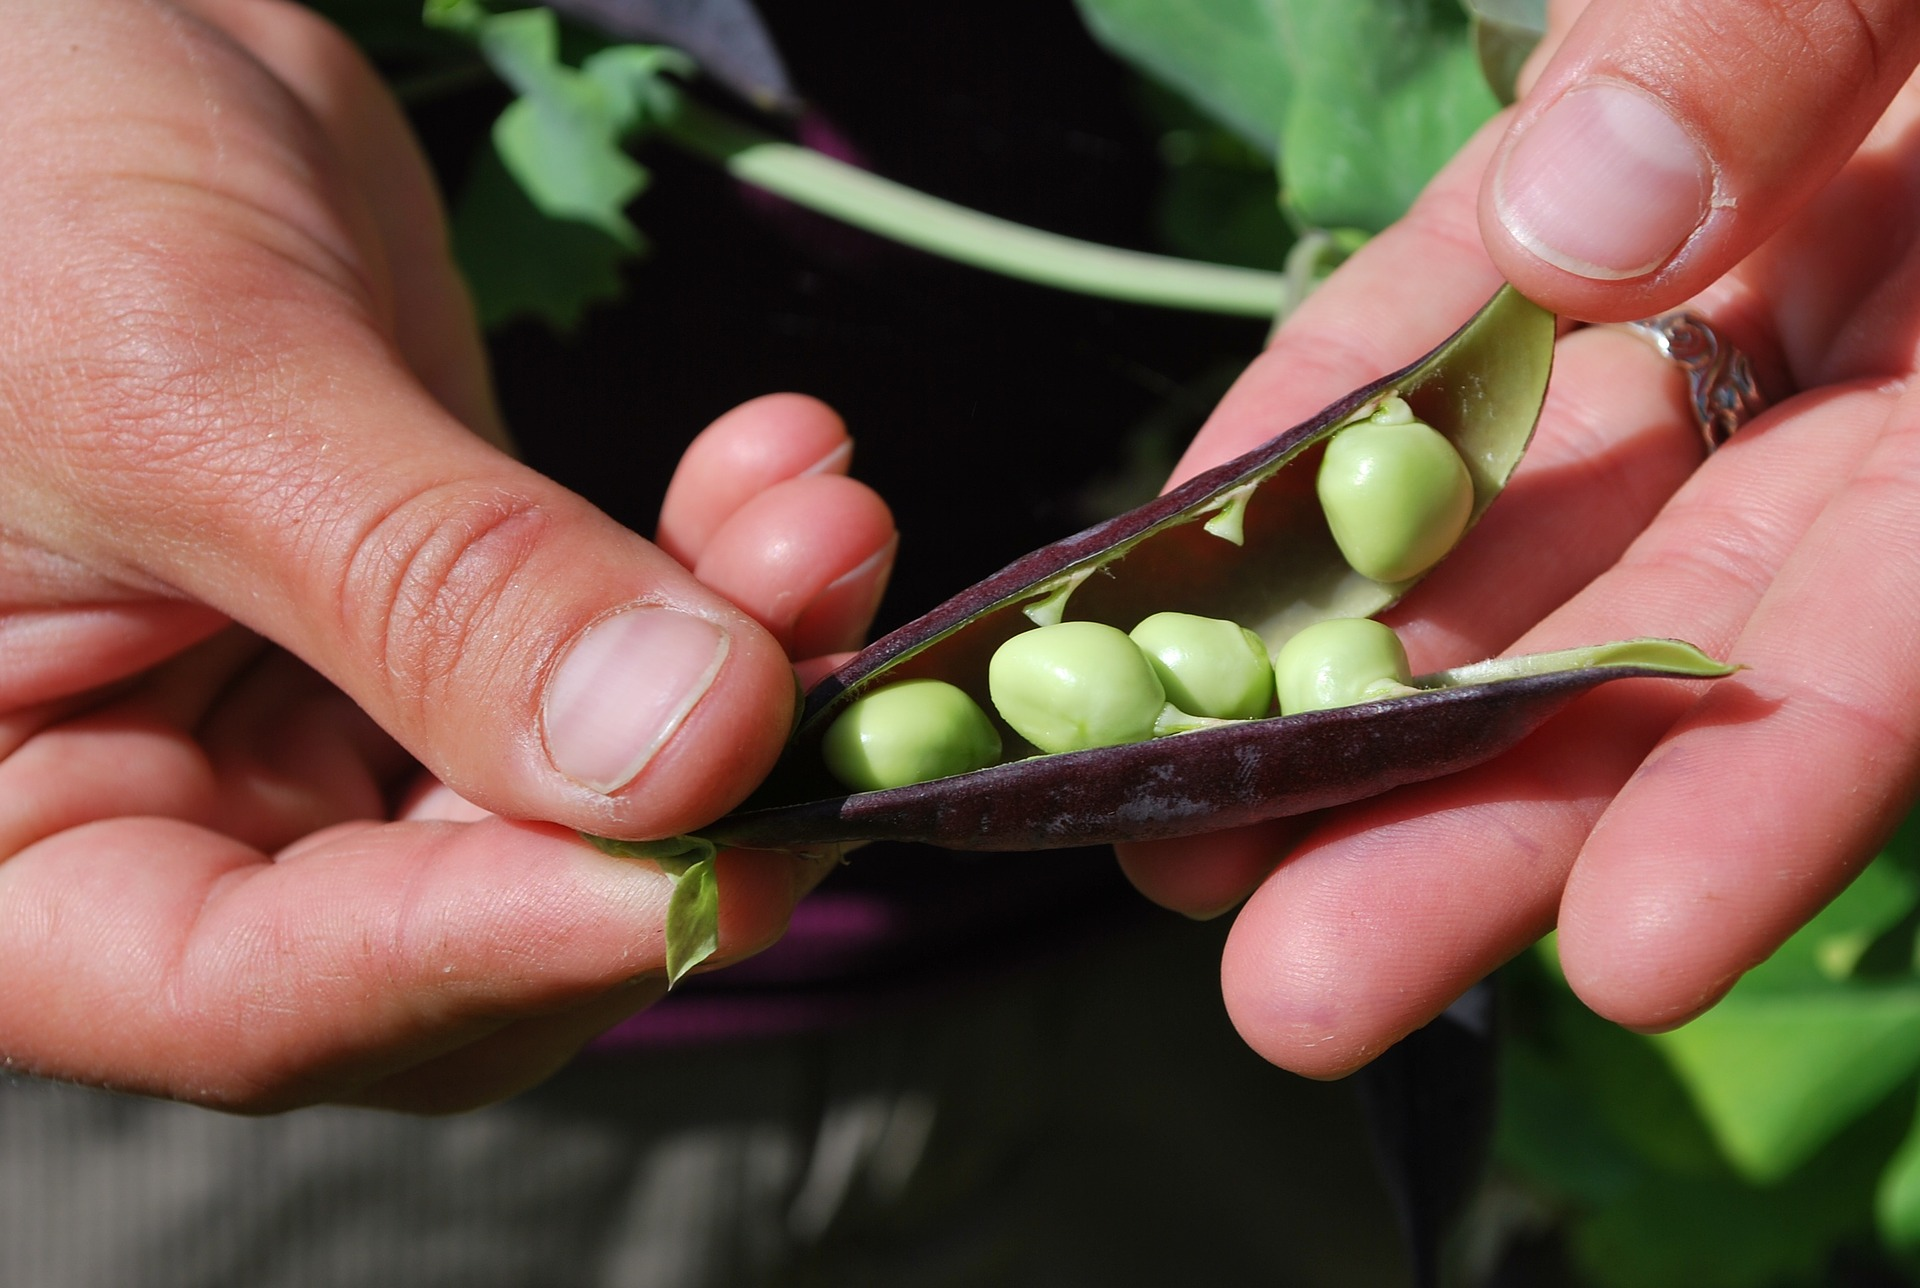 Harvesting Seeds from Peas